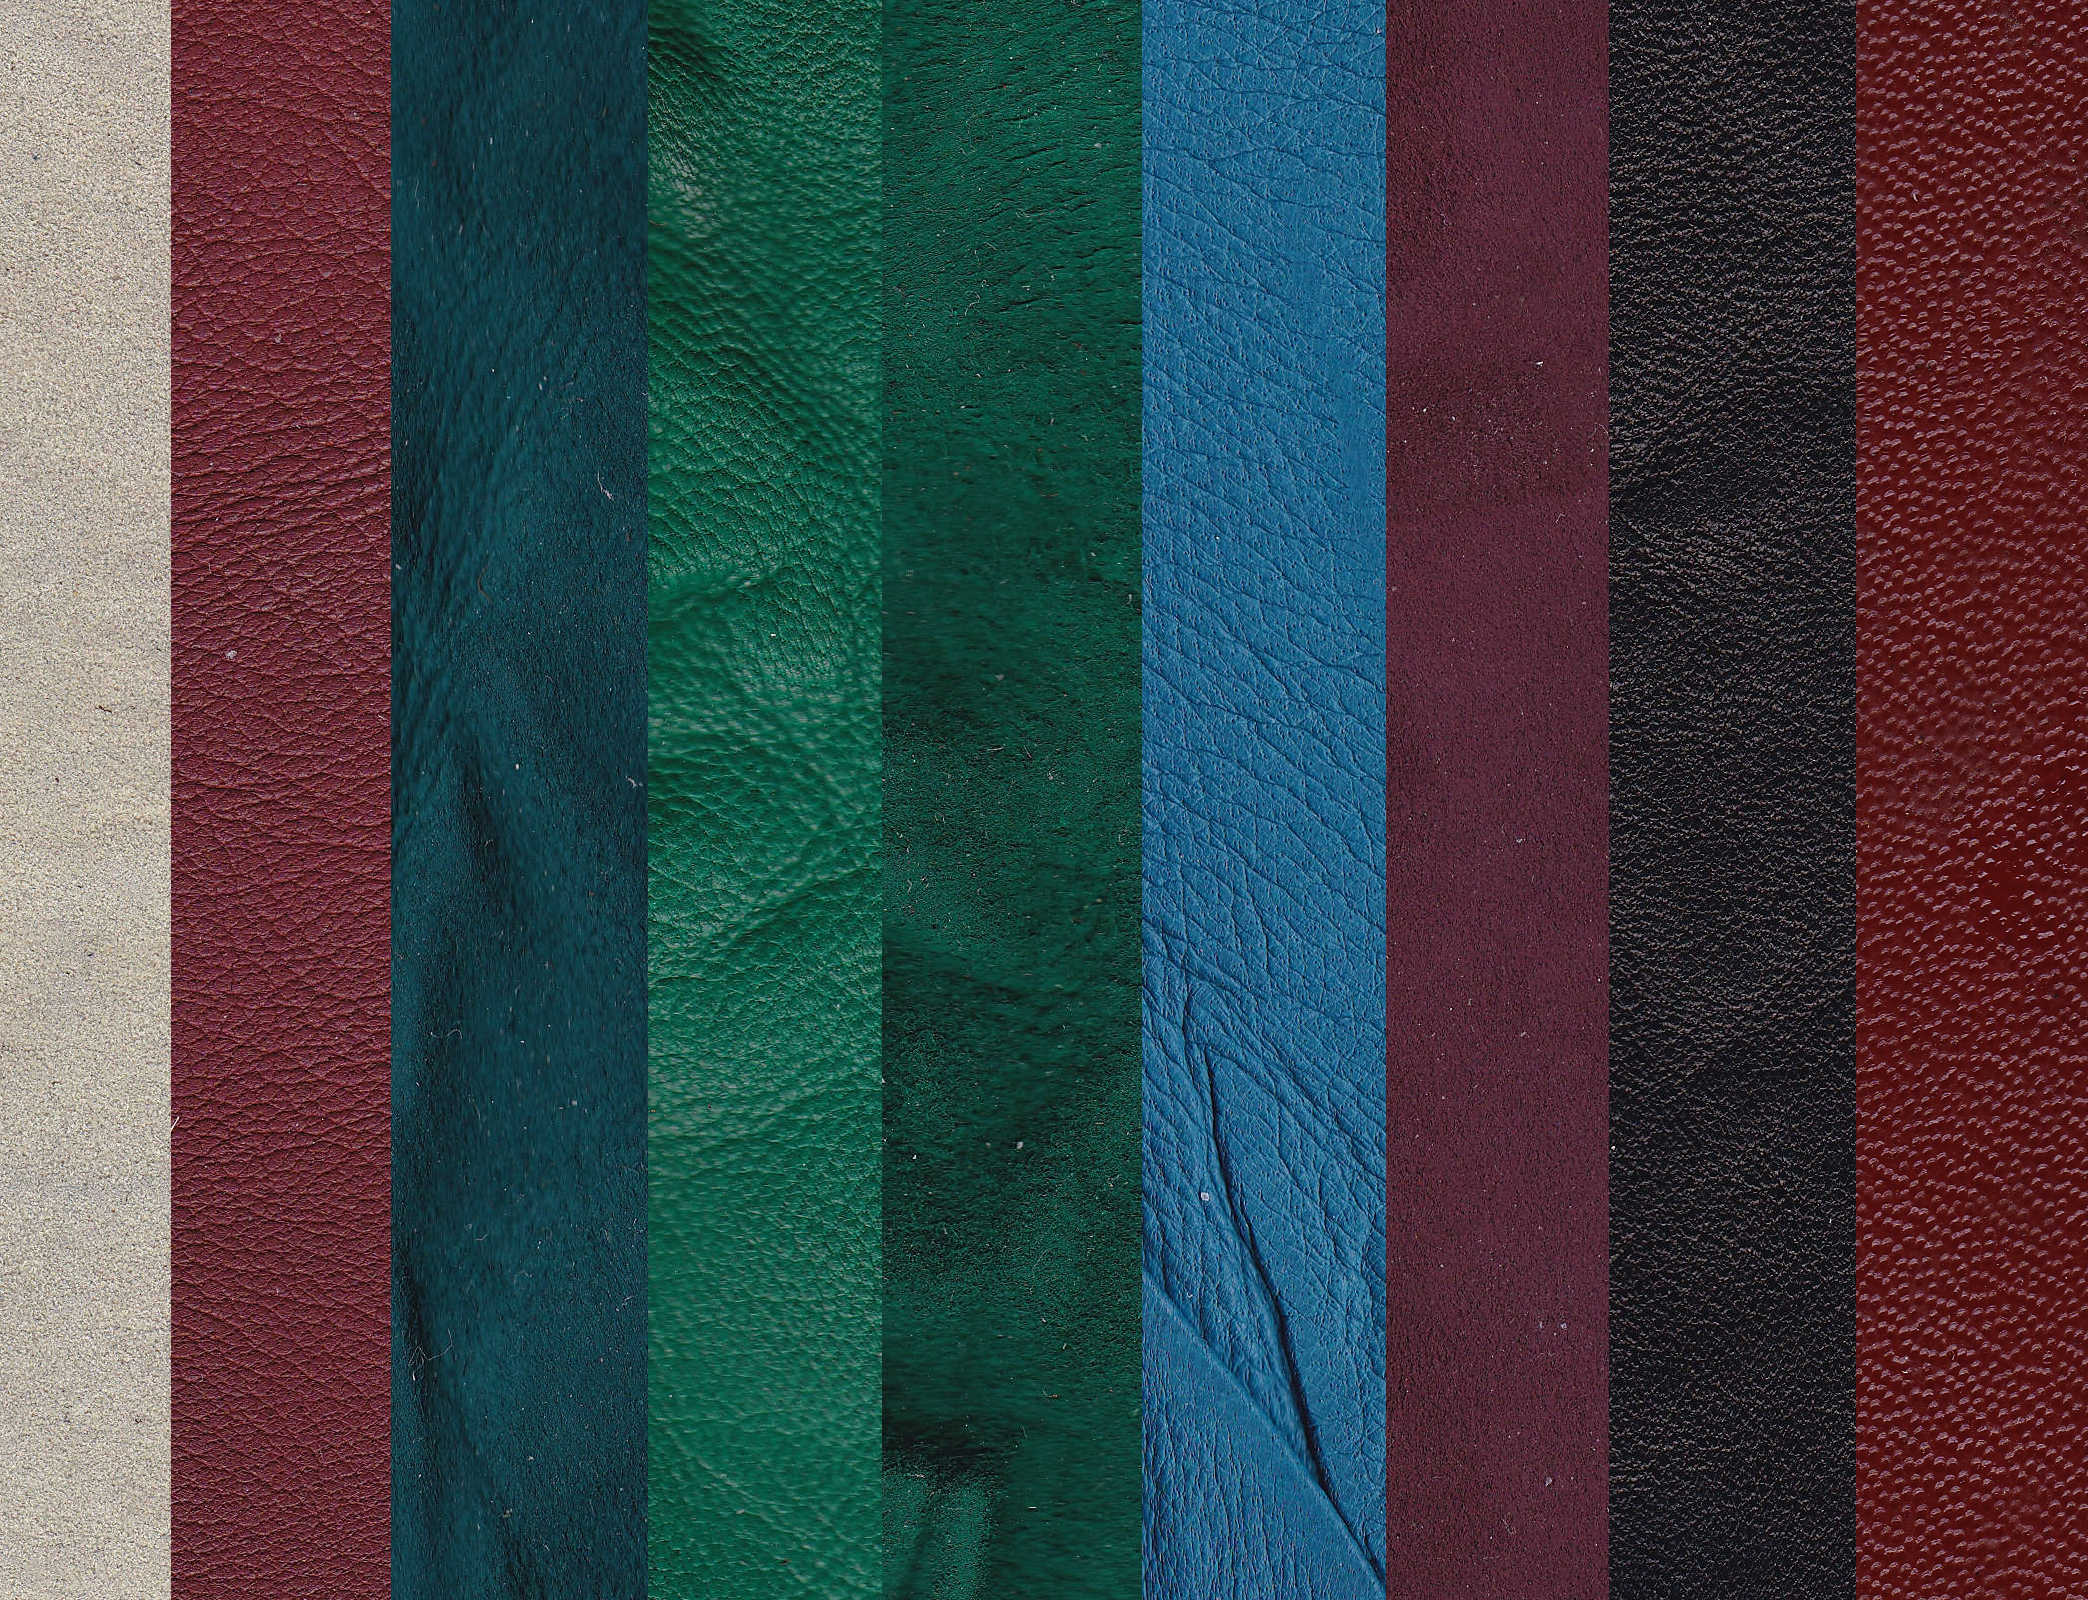 10-colored-leather-texture-cover.jpg